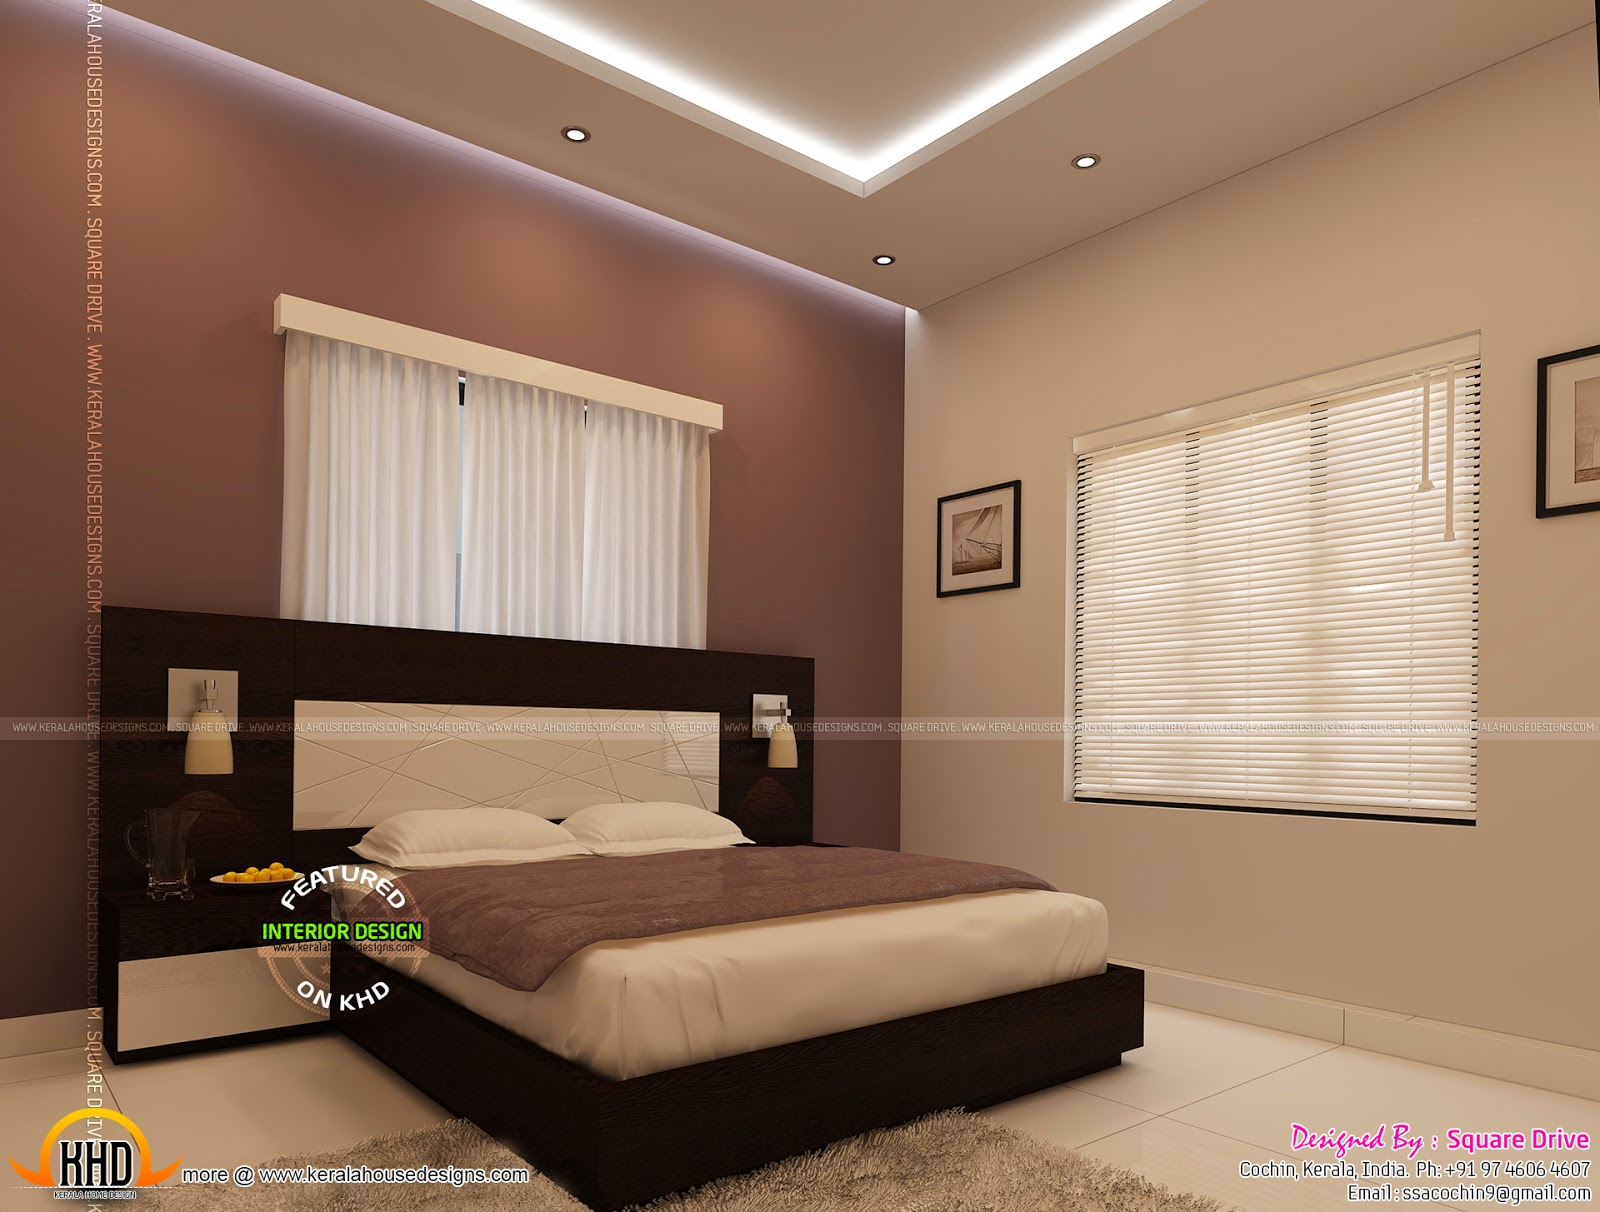 Interior Bed Room Design Bedroom Interior Designs Kerala Home Design And Floor Plans